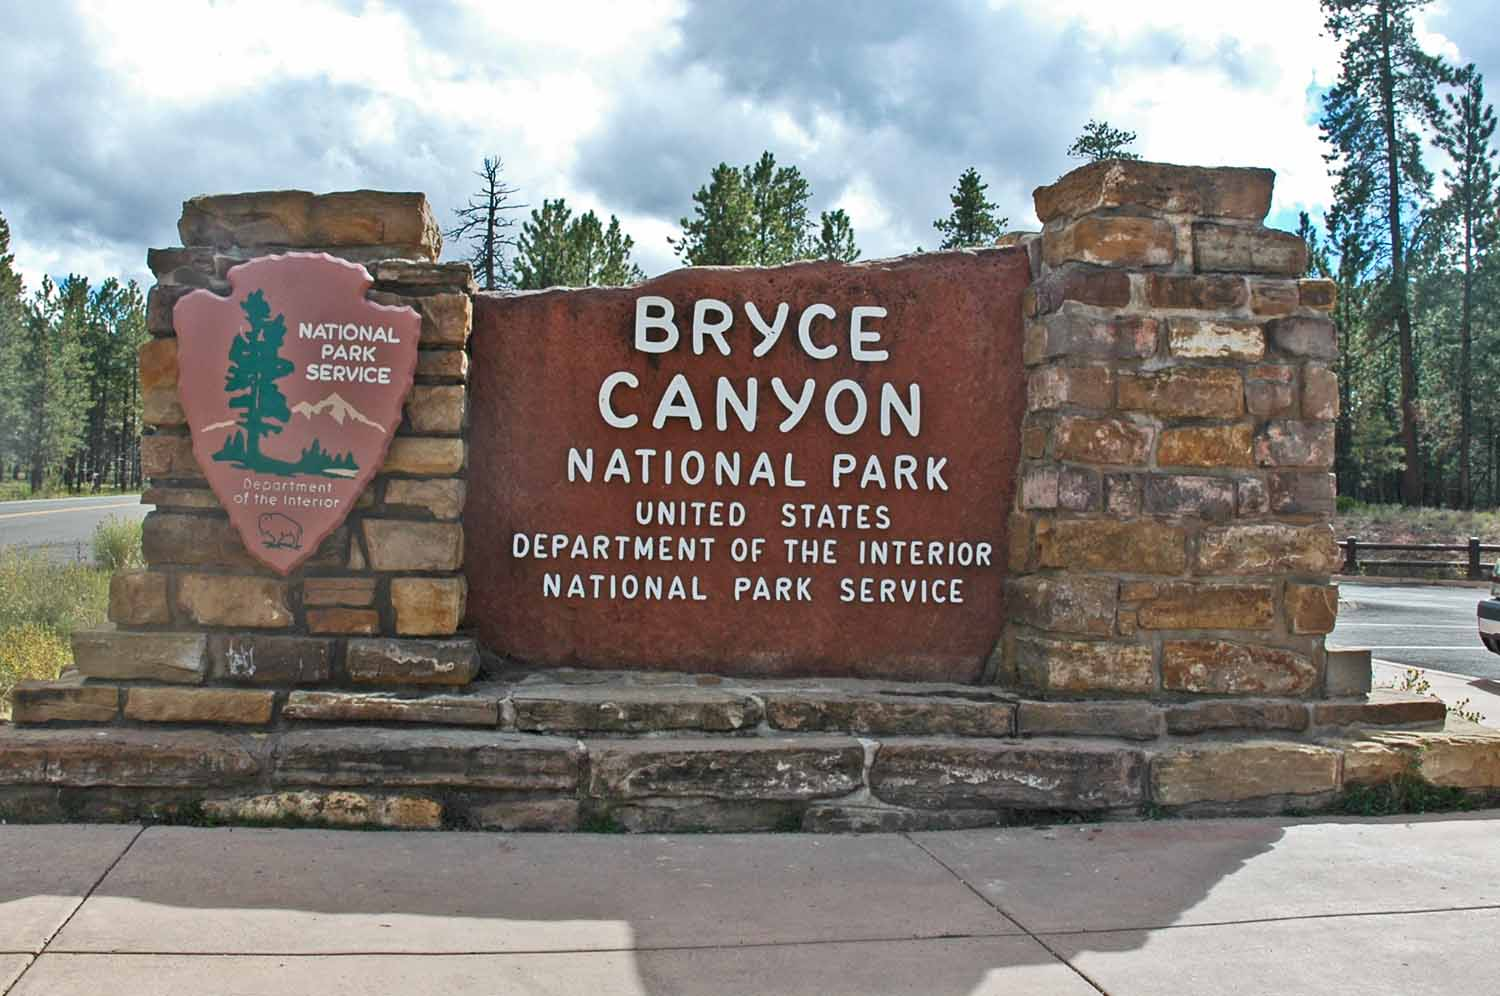 Bryce Canyon National Park - A personal favorite